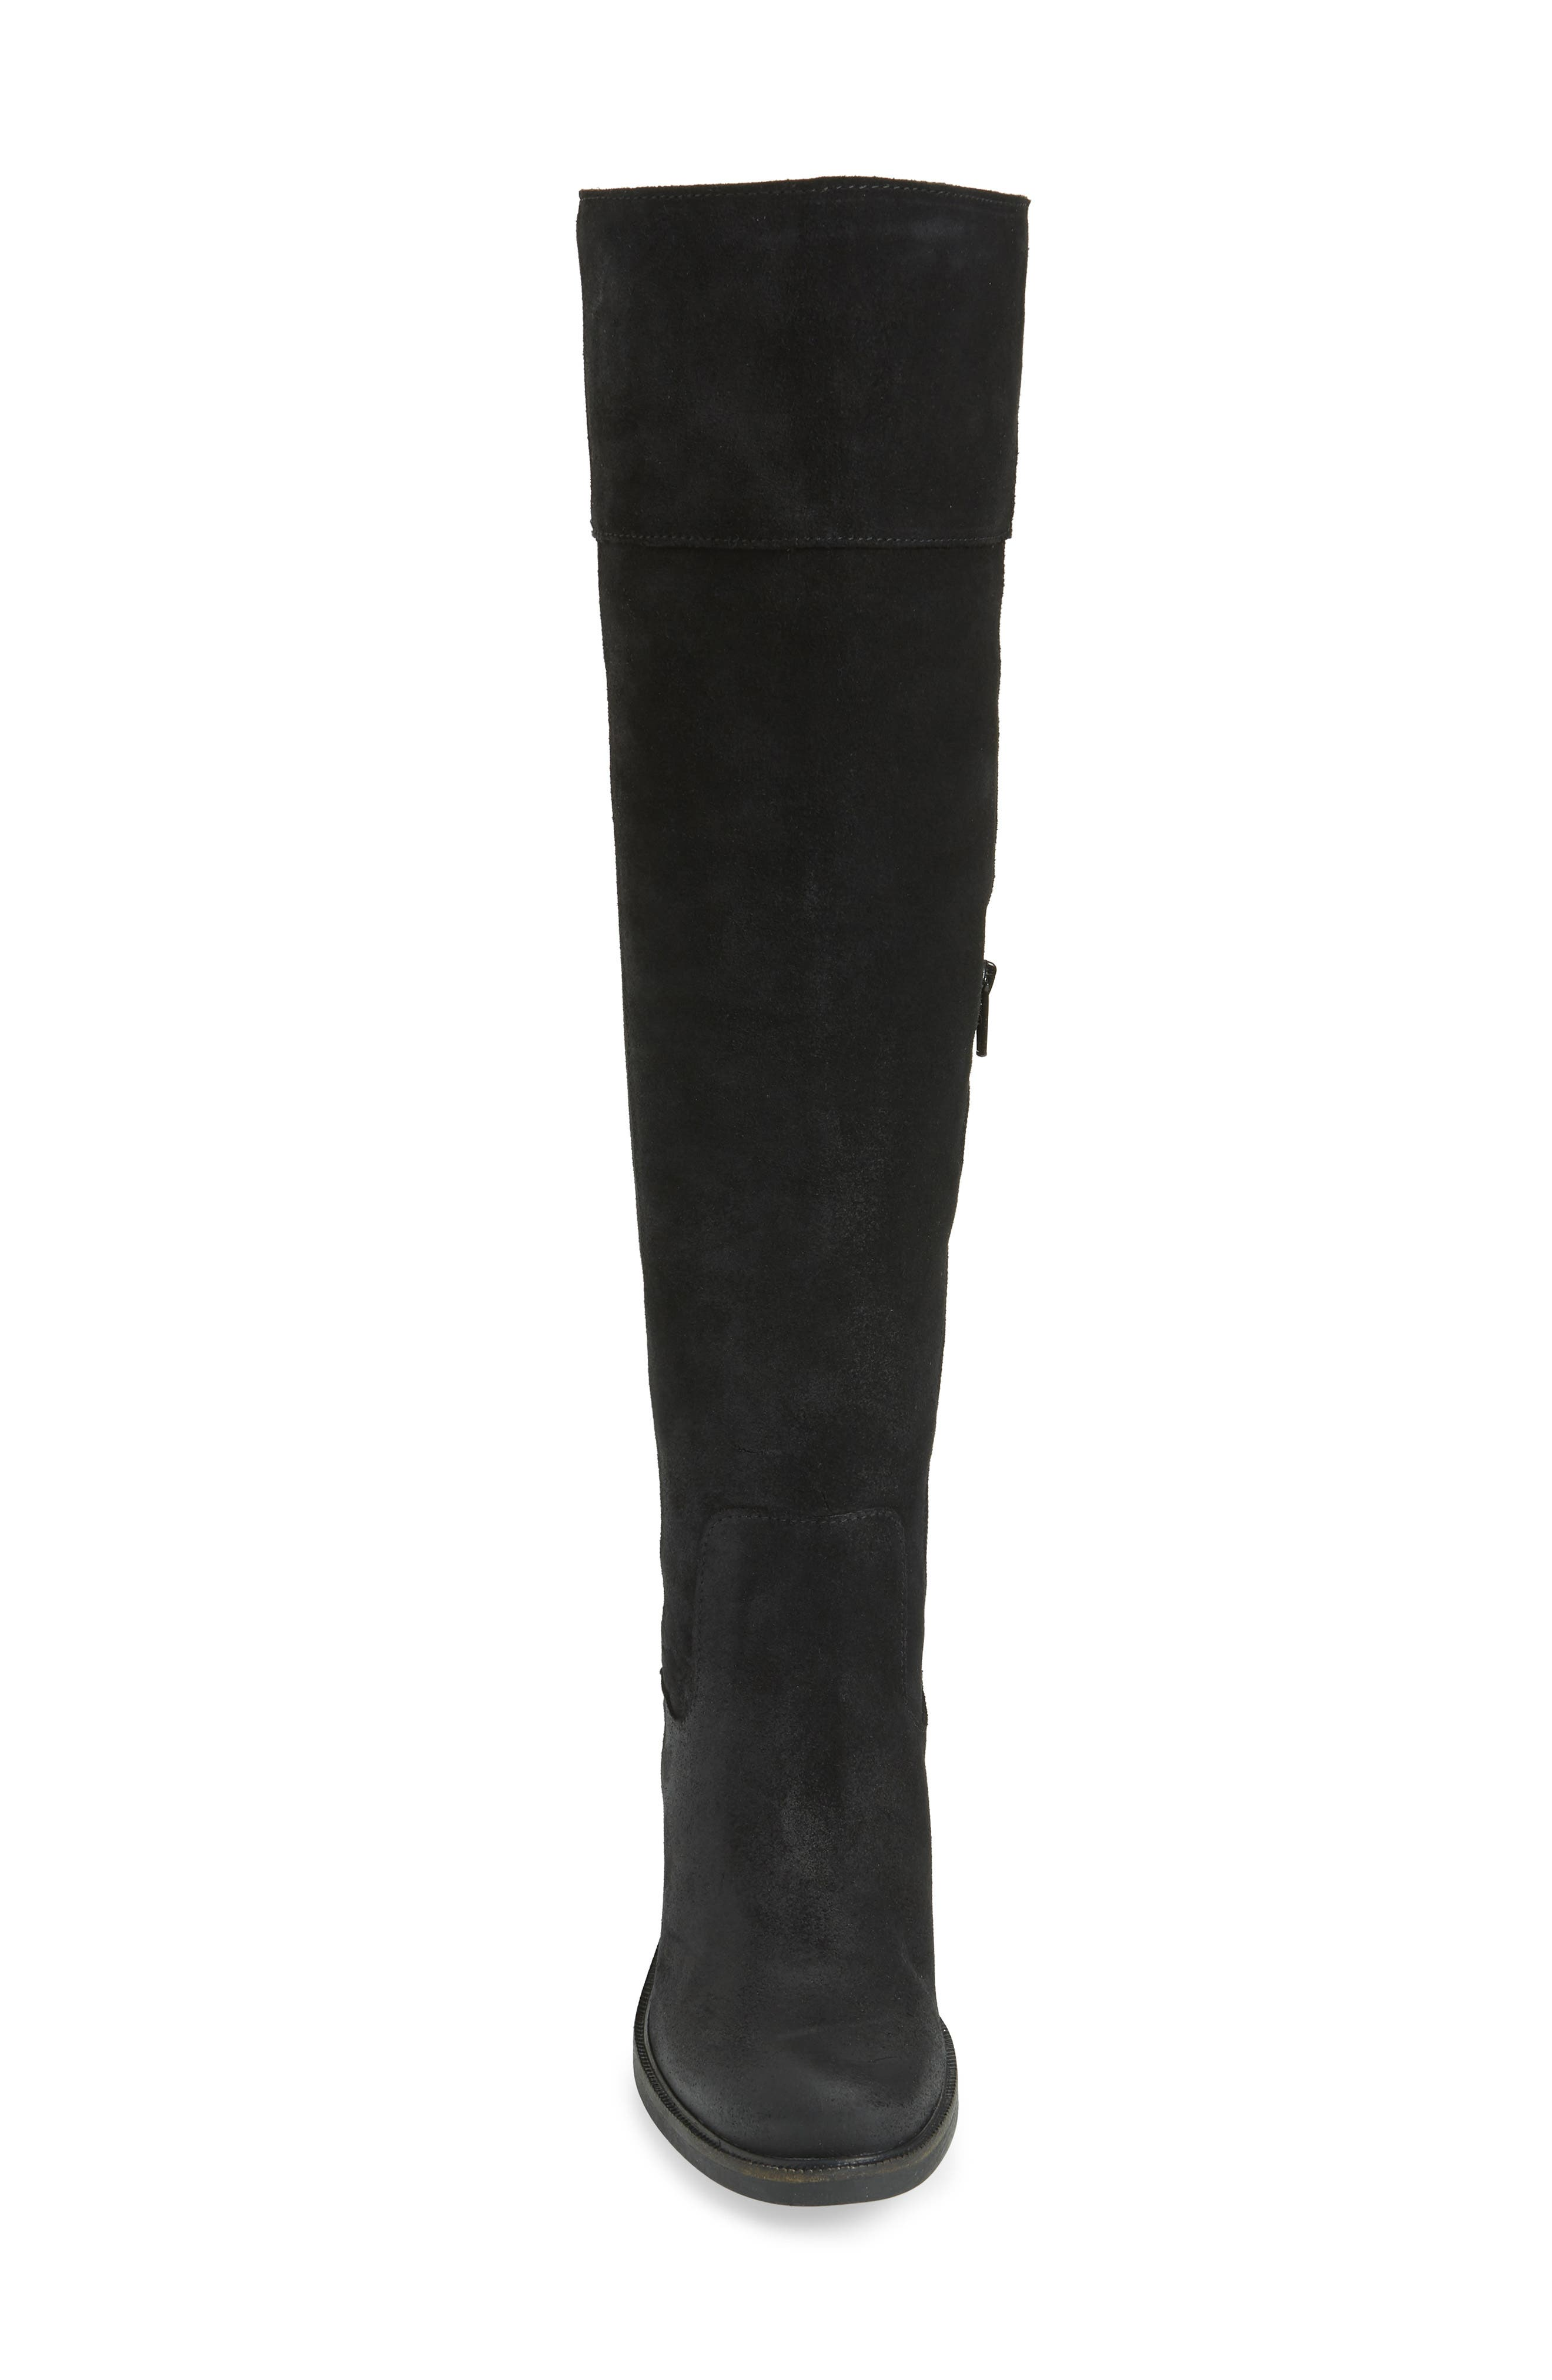 Bond Waterproof Over-the-Knee Boot,                             Alternate thumbnail 4, color,                             BLACK OIL SUEDE